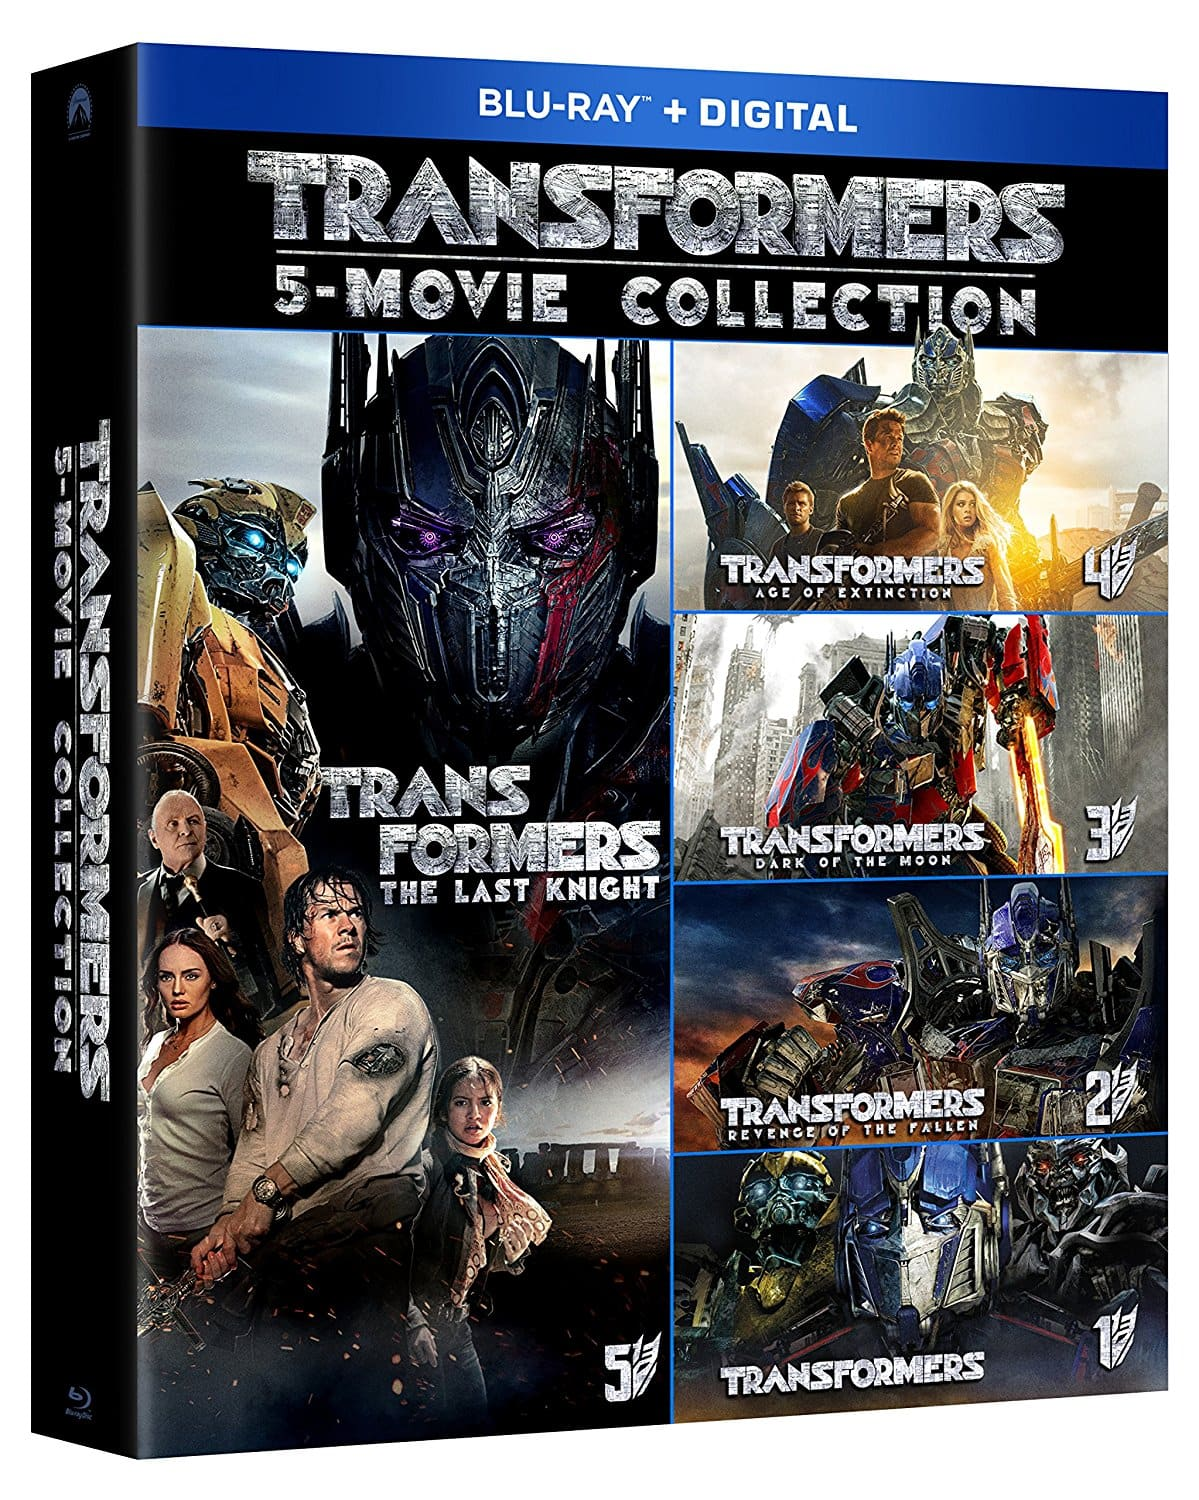 Transformers 5-Movie Collection (Blu-Ray + Digital HD) $29.99 + Free Shipping